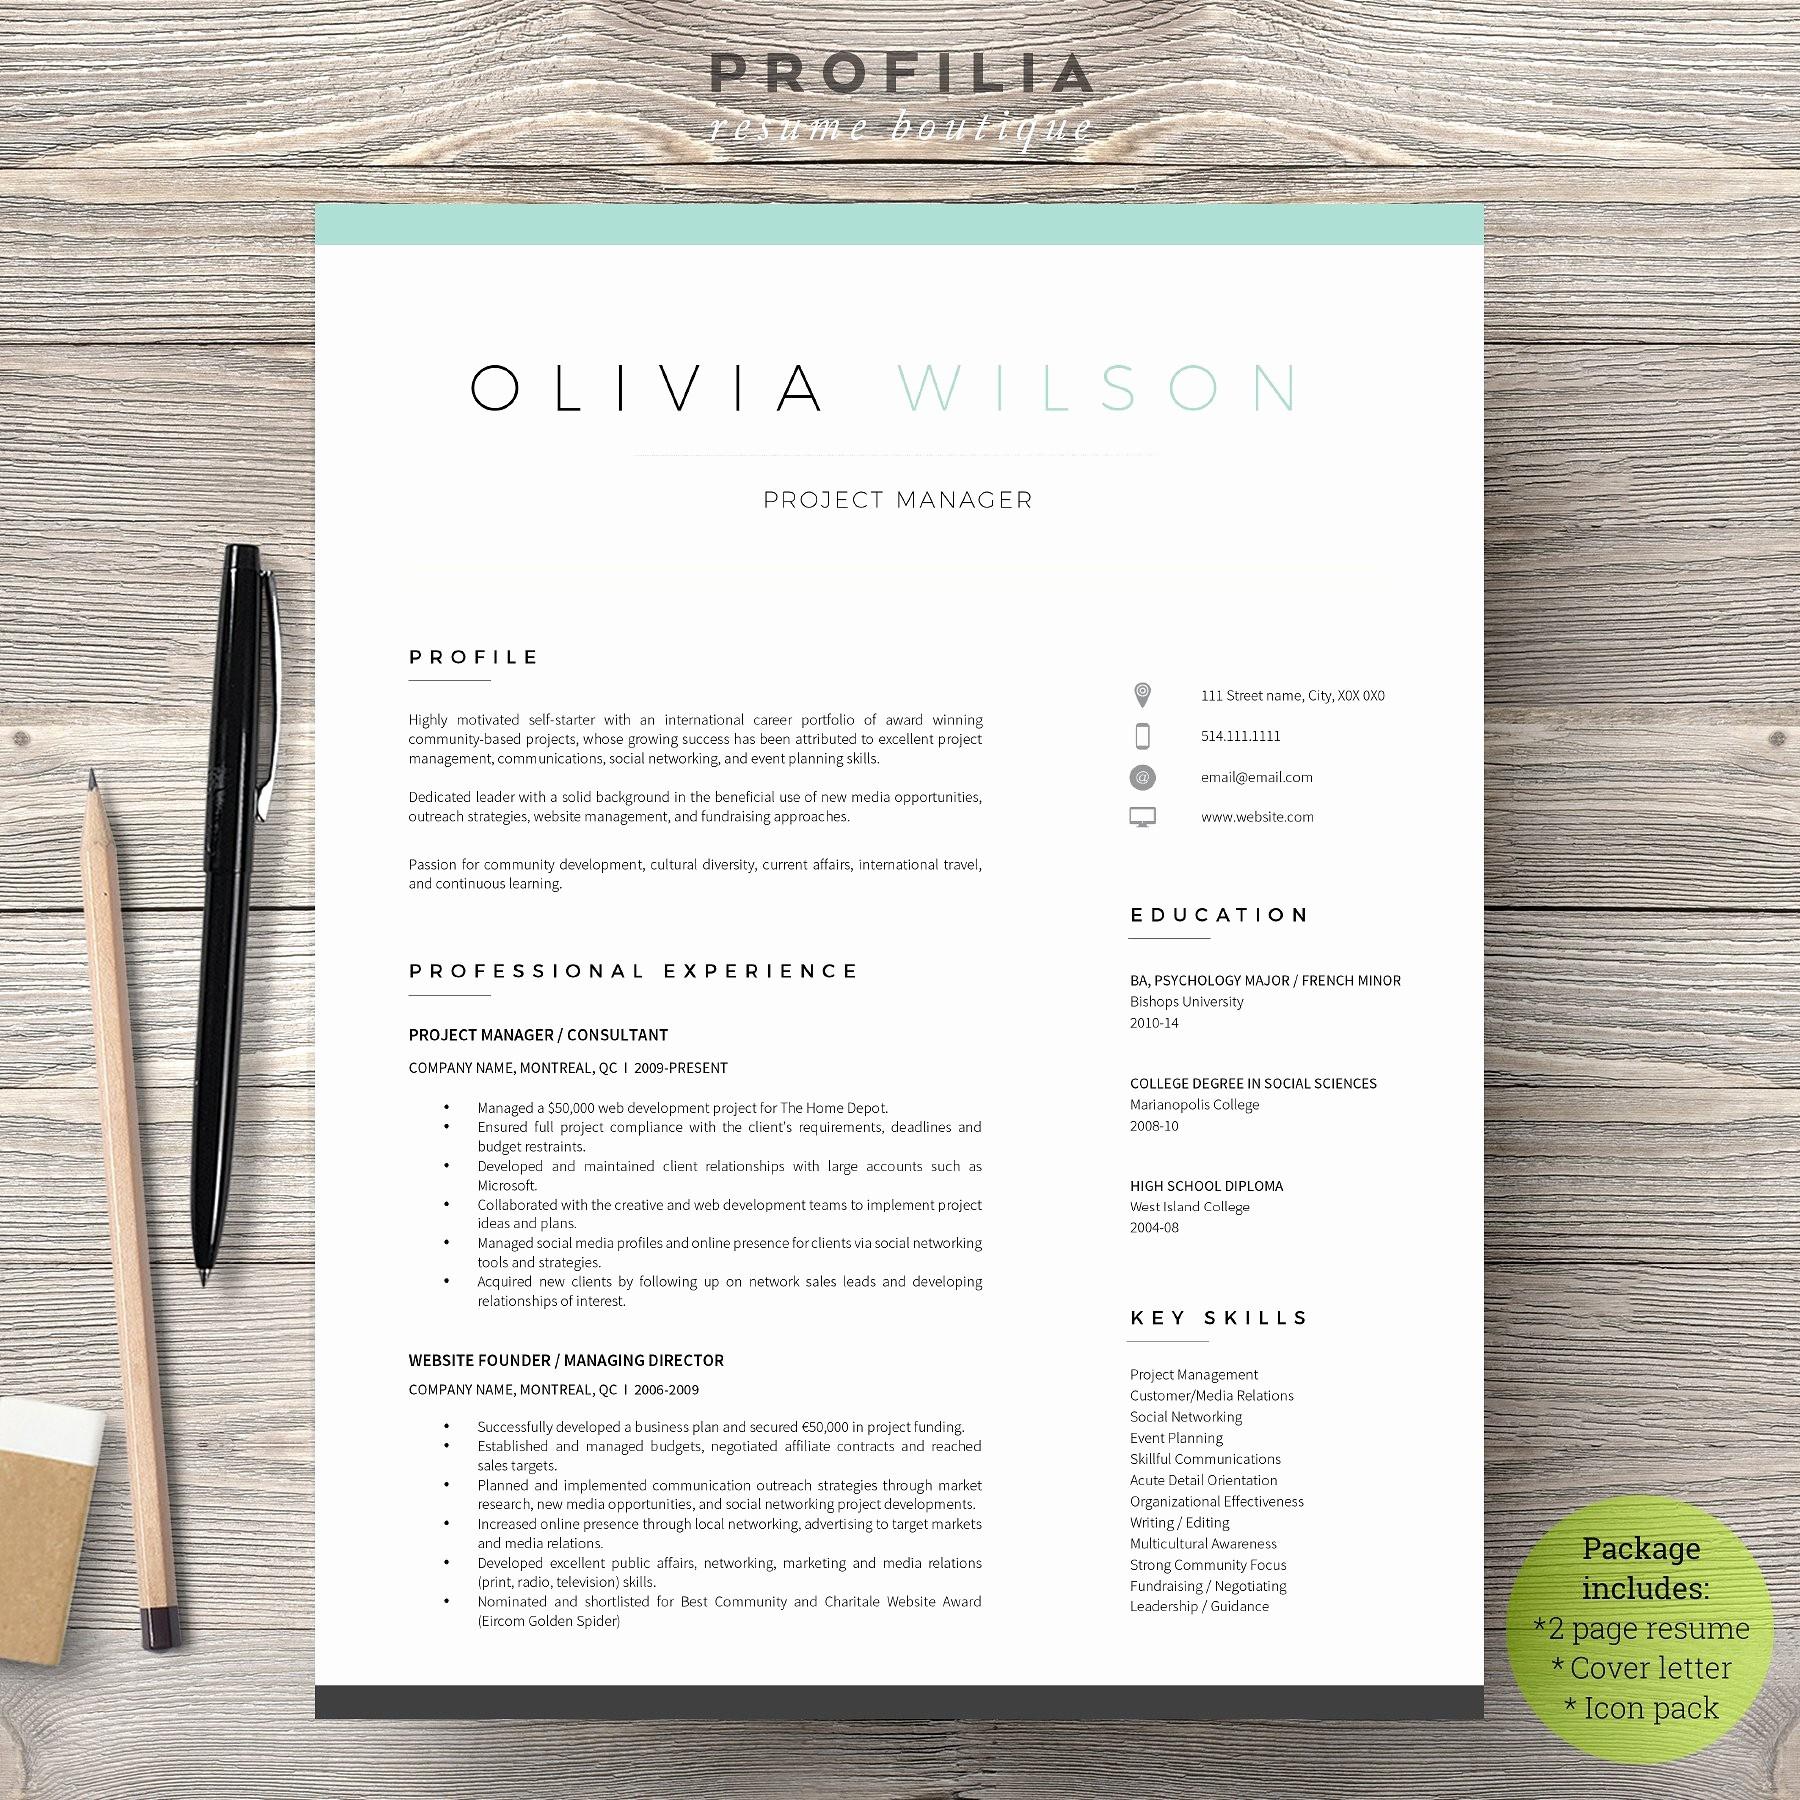 Resume Cover Page Template Word Beautiful Word Resume & Cover Letter Template Cover Letter